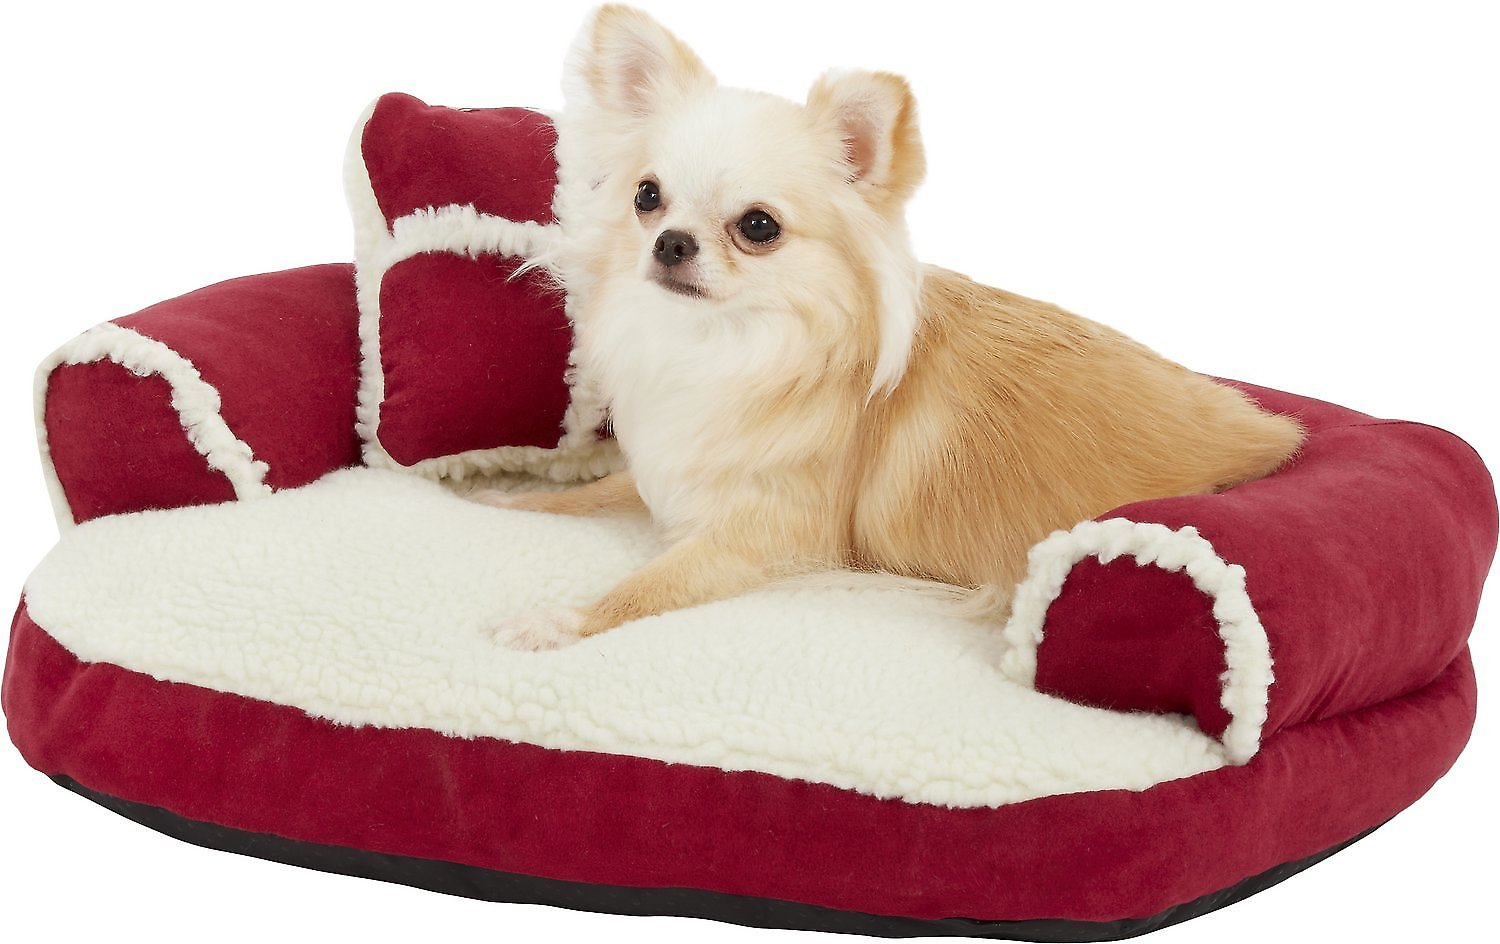 aspen pet sofa bed for dogs cats assorted colors retro sydney small and color varies